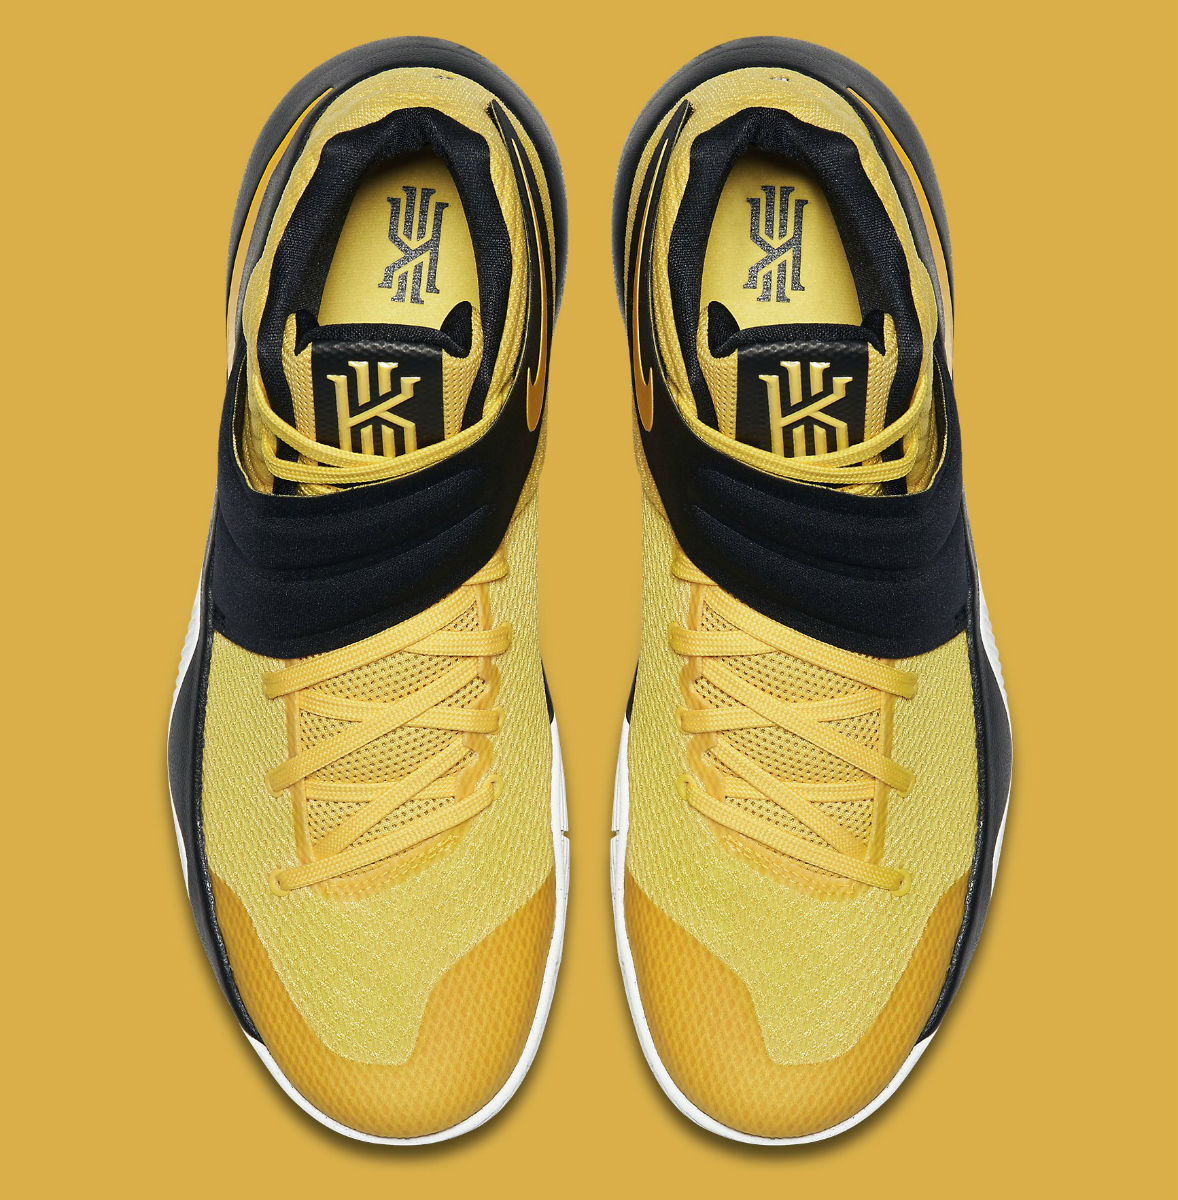 huge discount bb1e5 704ab Nike Kyrie 2 Australia Yellow Top 819583 701